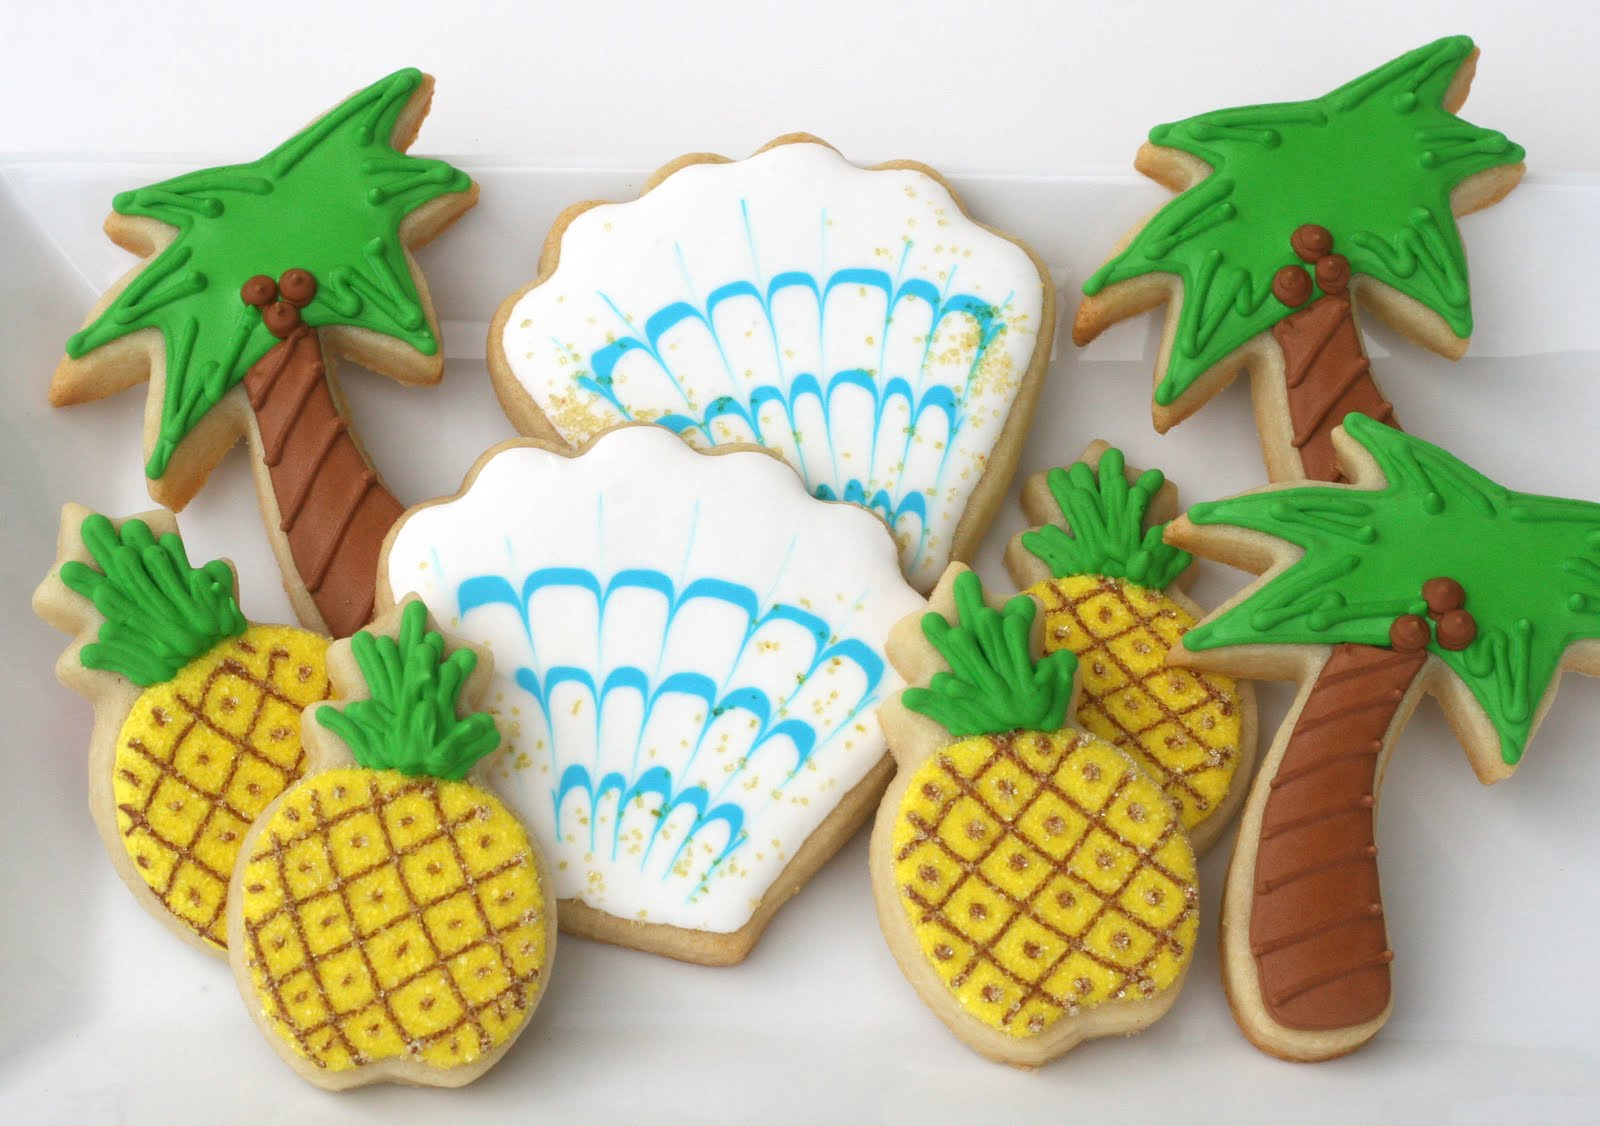 Cookie decorating party ideas - Fun Summer Cookies Cookie Decorating